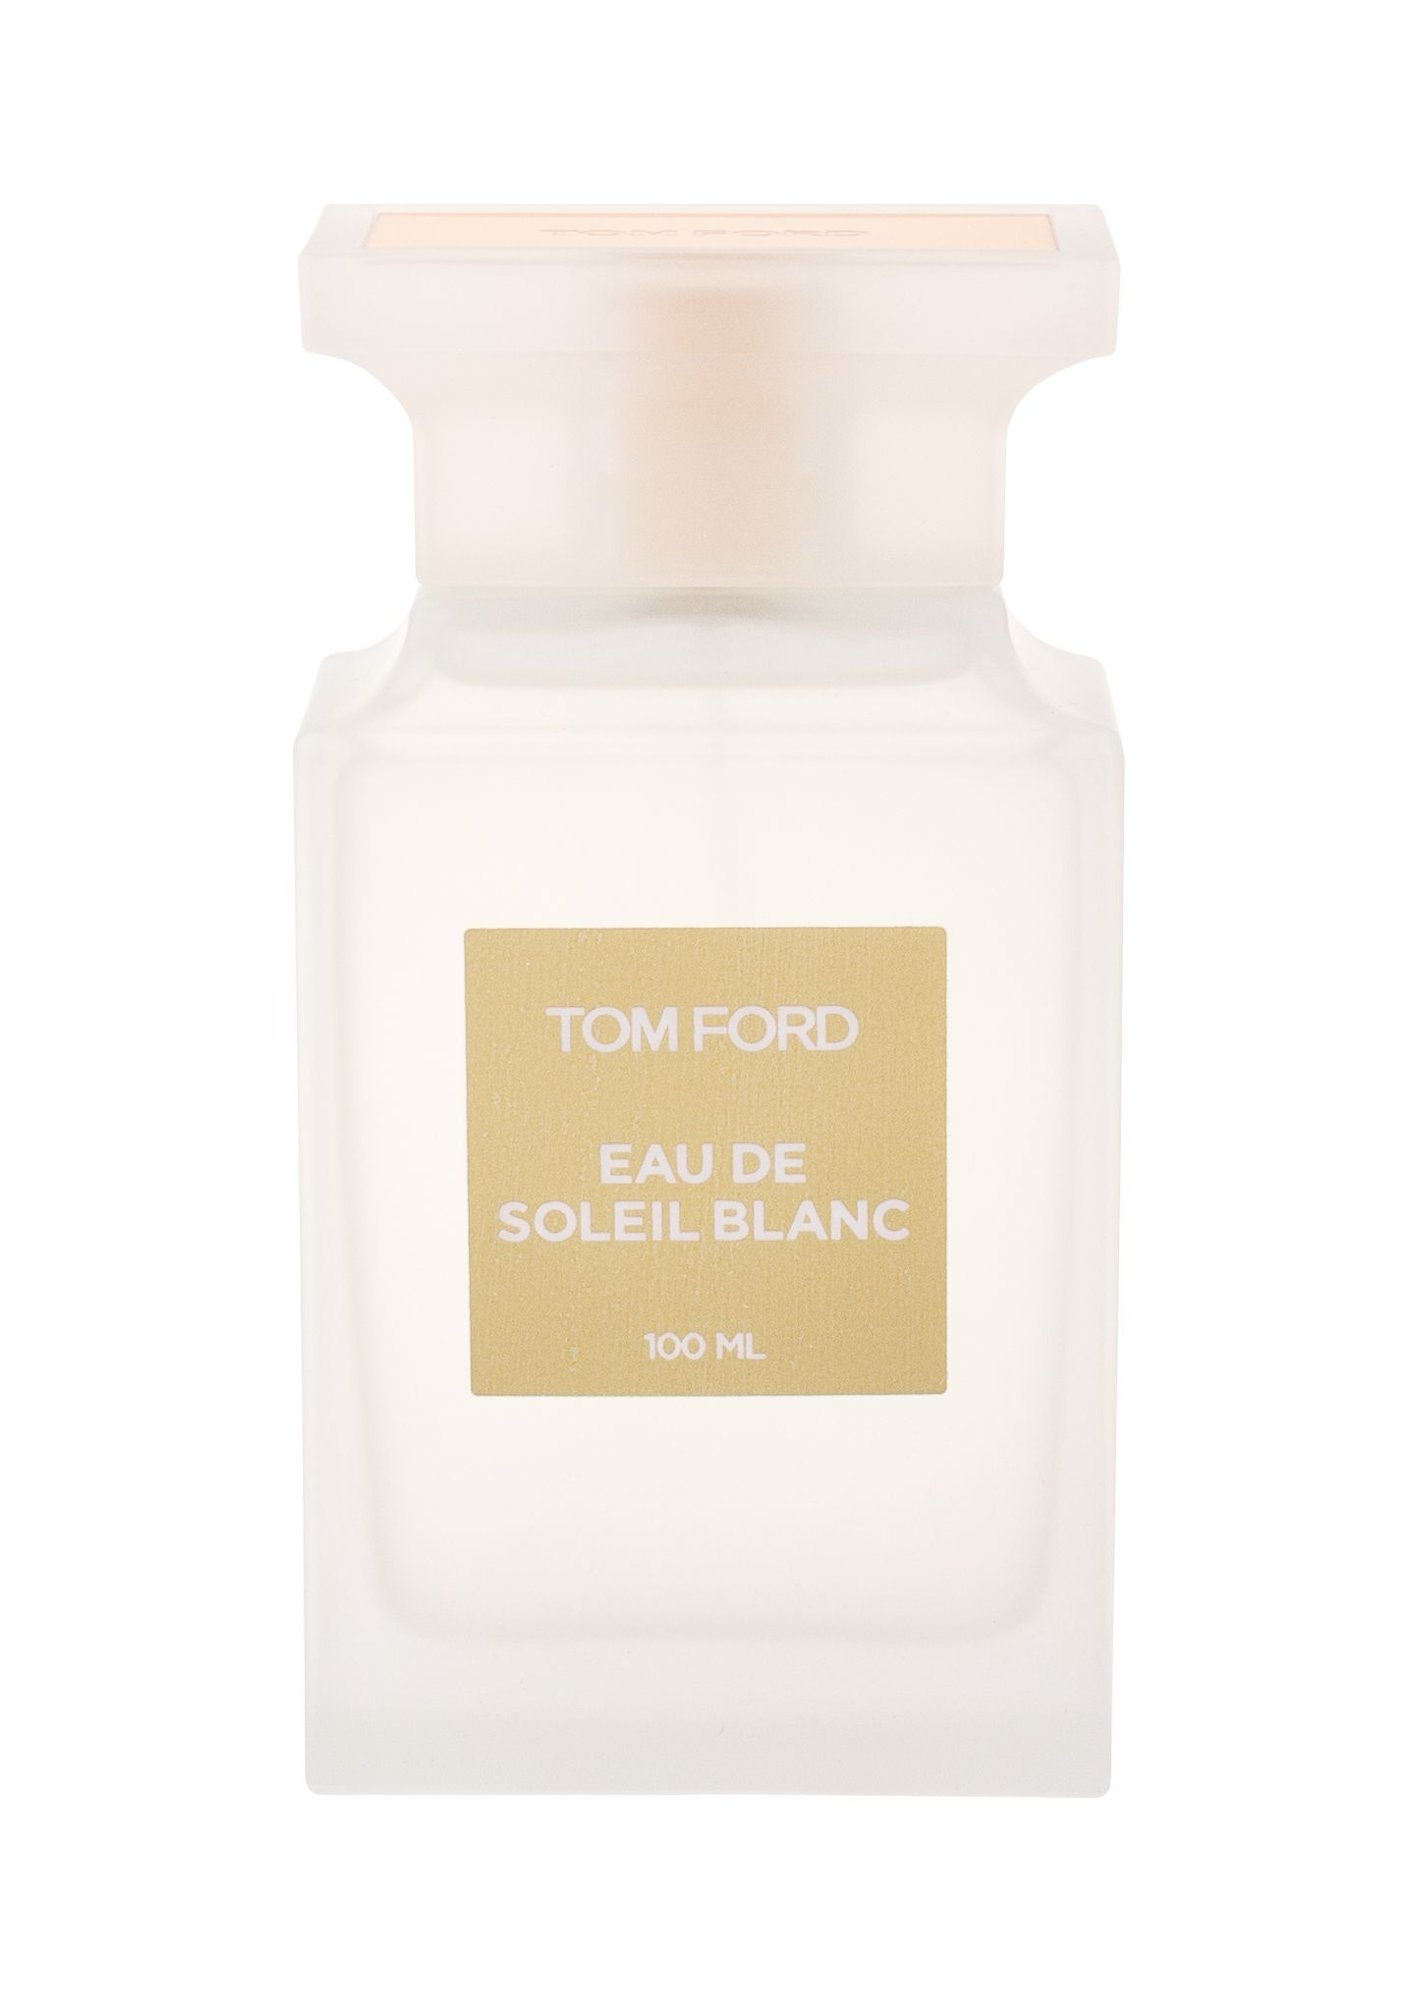 TOM FORD Eau de Soleil Blanc Eau de Toilette 100ml